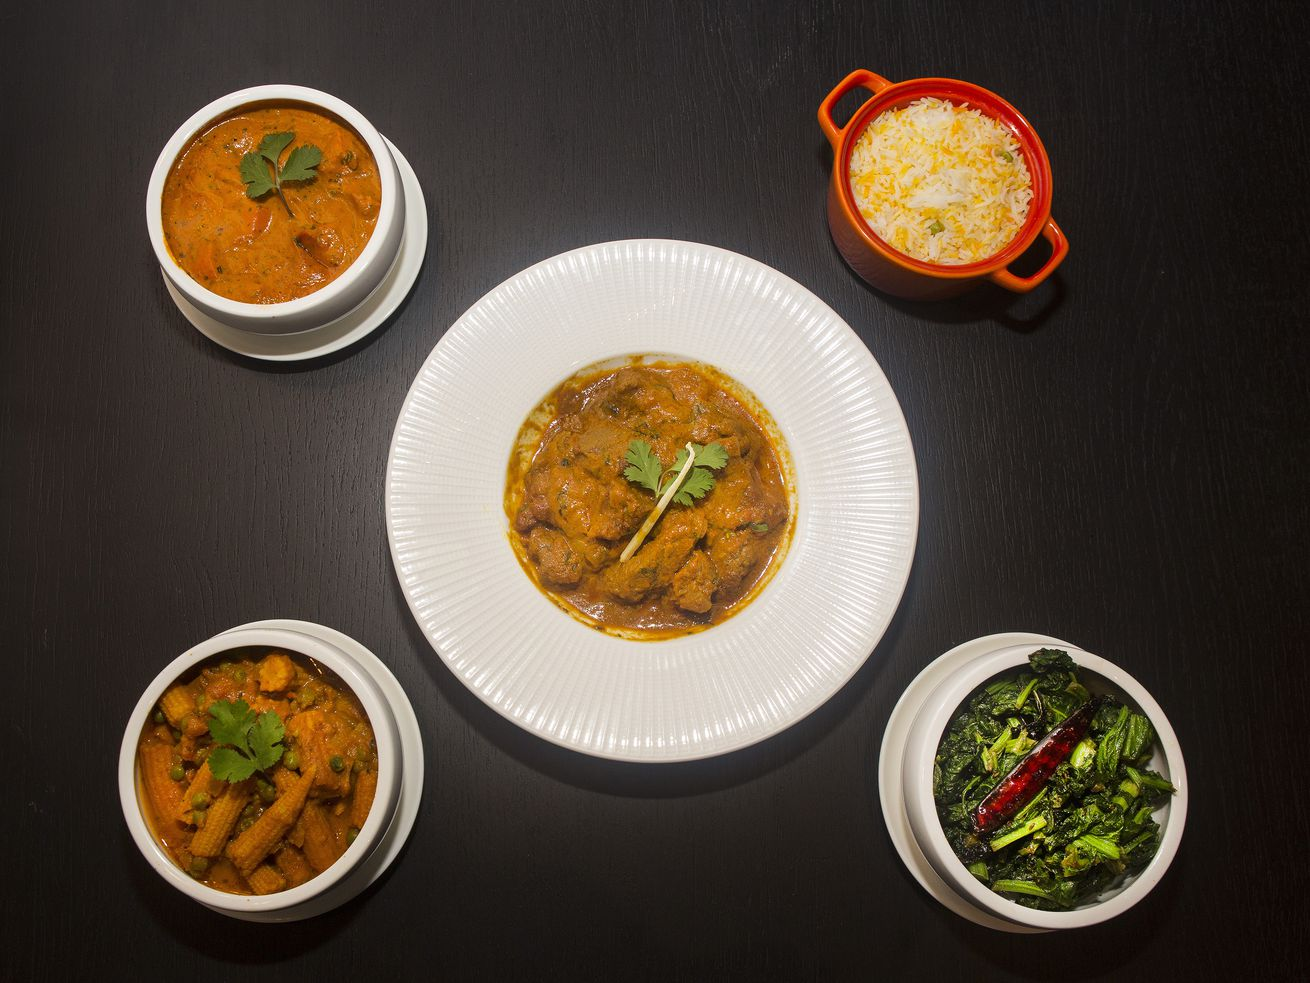 Find traditional and modern South Asian fare at Vajra.